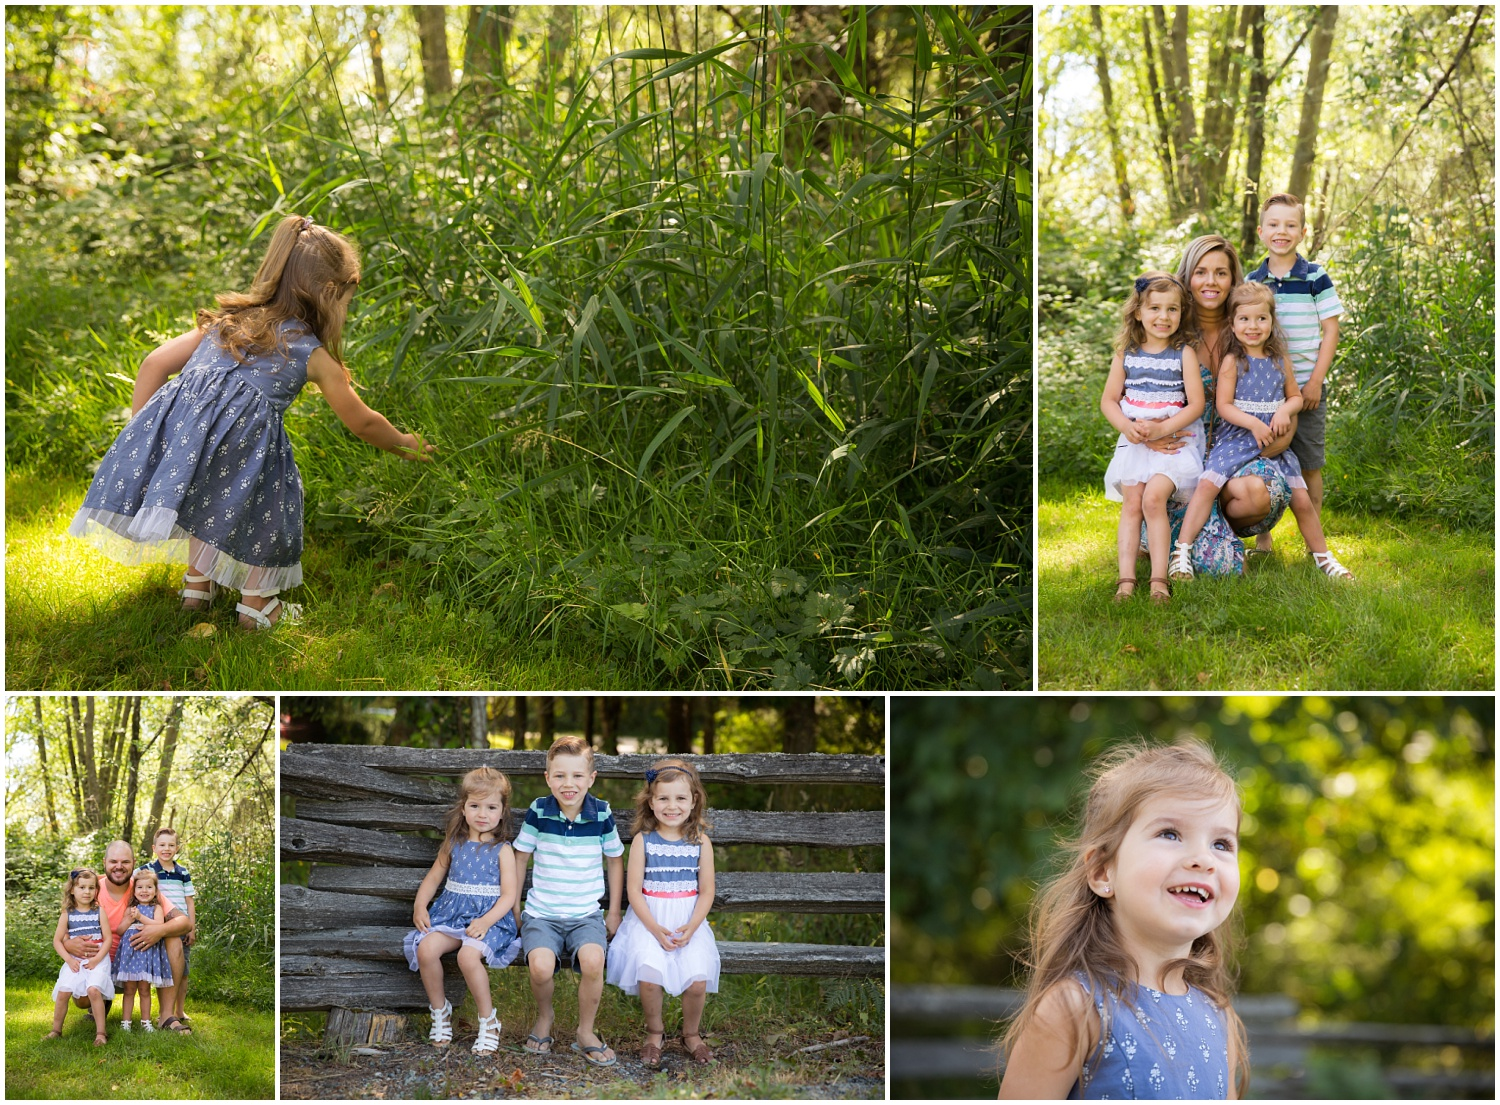 Amazing Day Photography - Campbell Valley Family Session - Langley Family Photographer (6).jpg